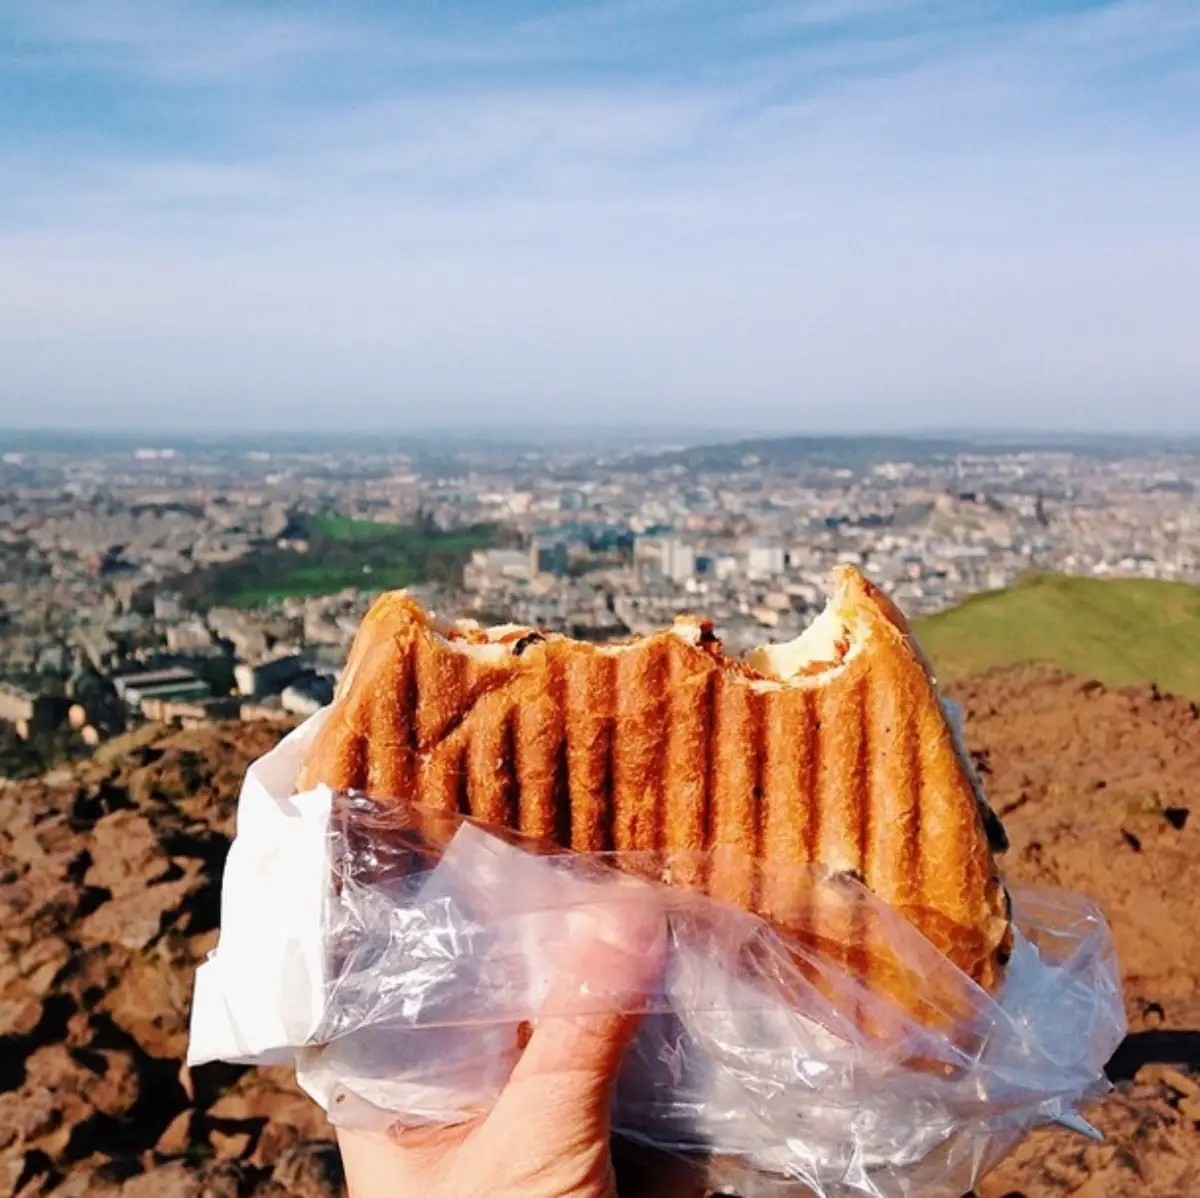 Delicious sandwich at the peak of Arthur's seat in Edinburgh. The weather ain't always this good in Edinburgh, but I am blessed.